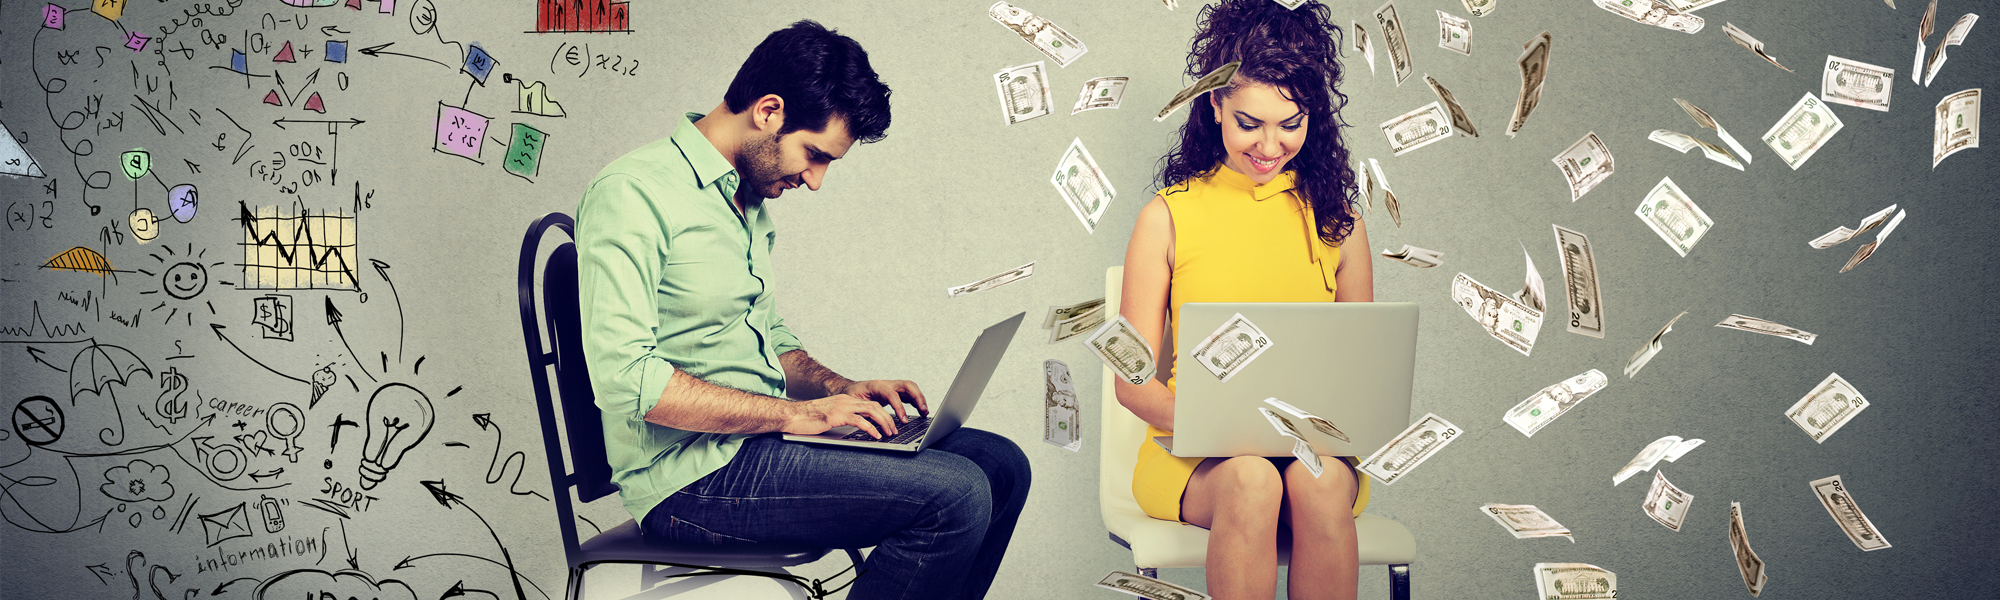 Man sitting in a chair next to a girl on a laptop in money rain